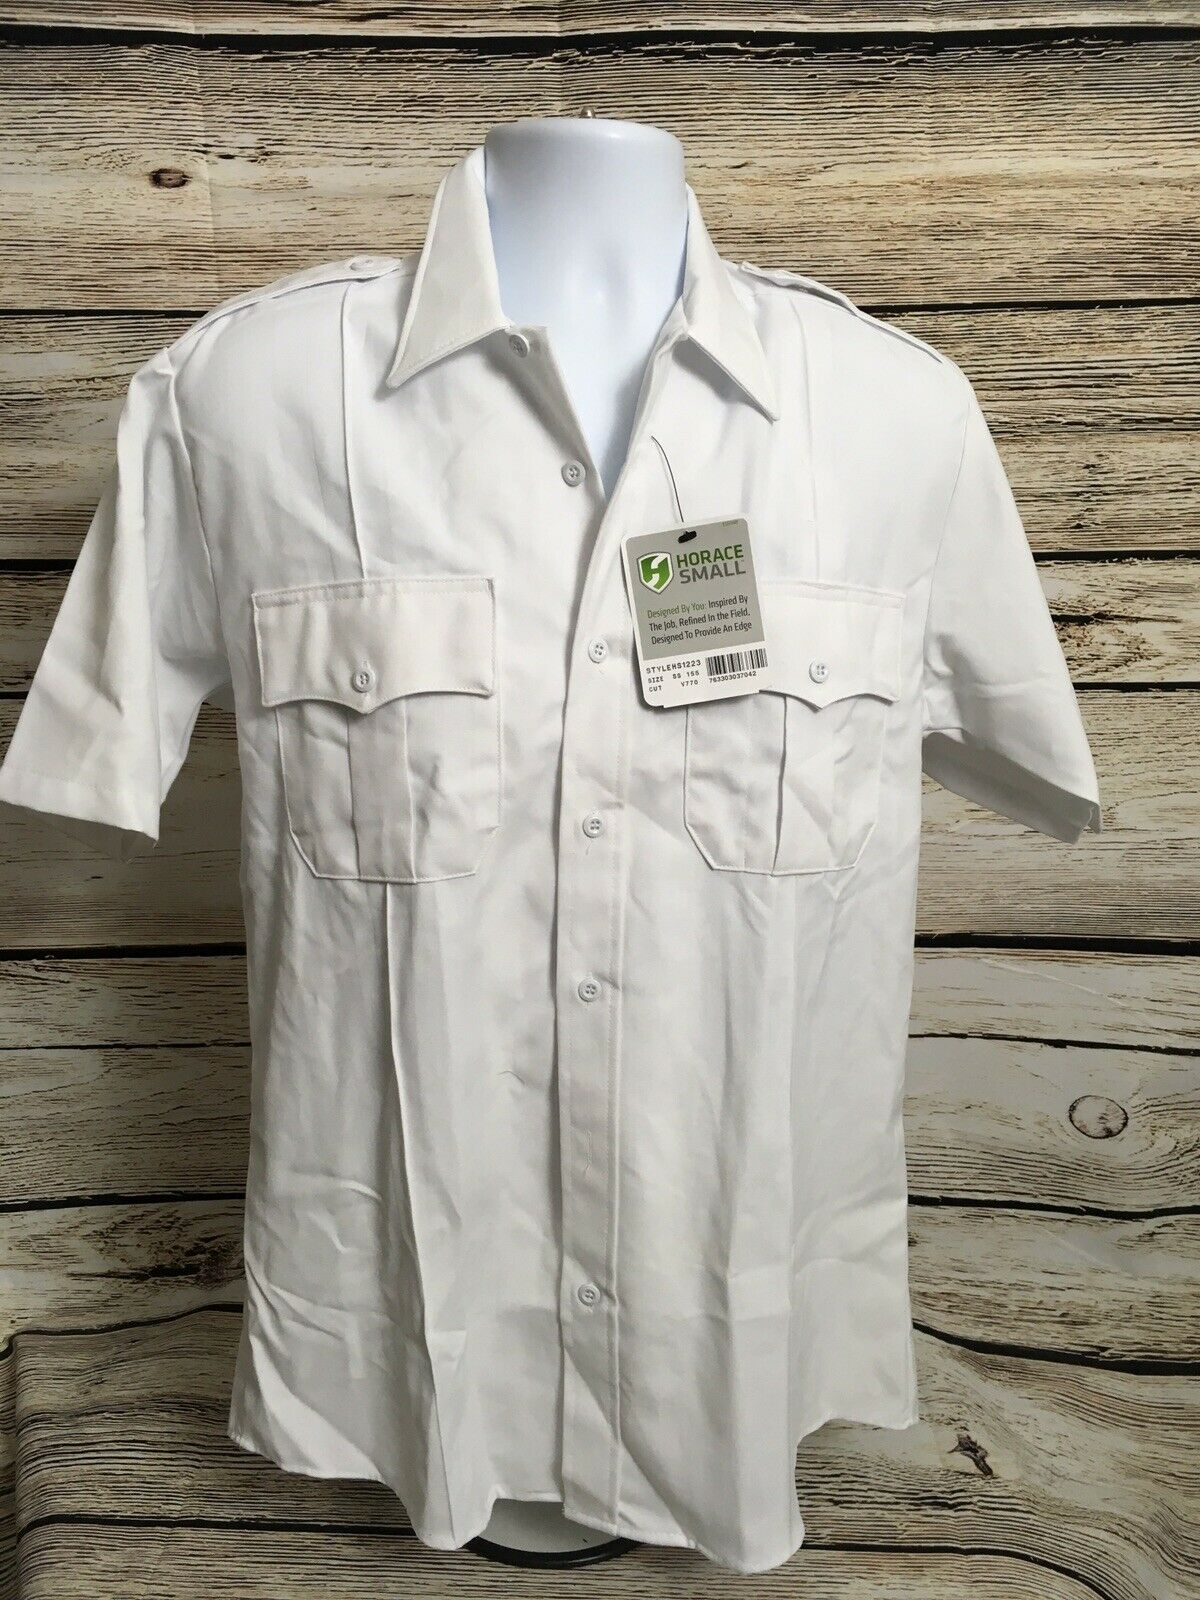 Horace Small Size 15.5 White Deputy Deluxe EMS Fire Security Short Sleeve NEW R5